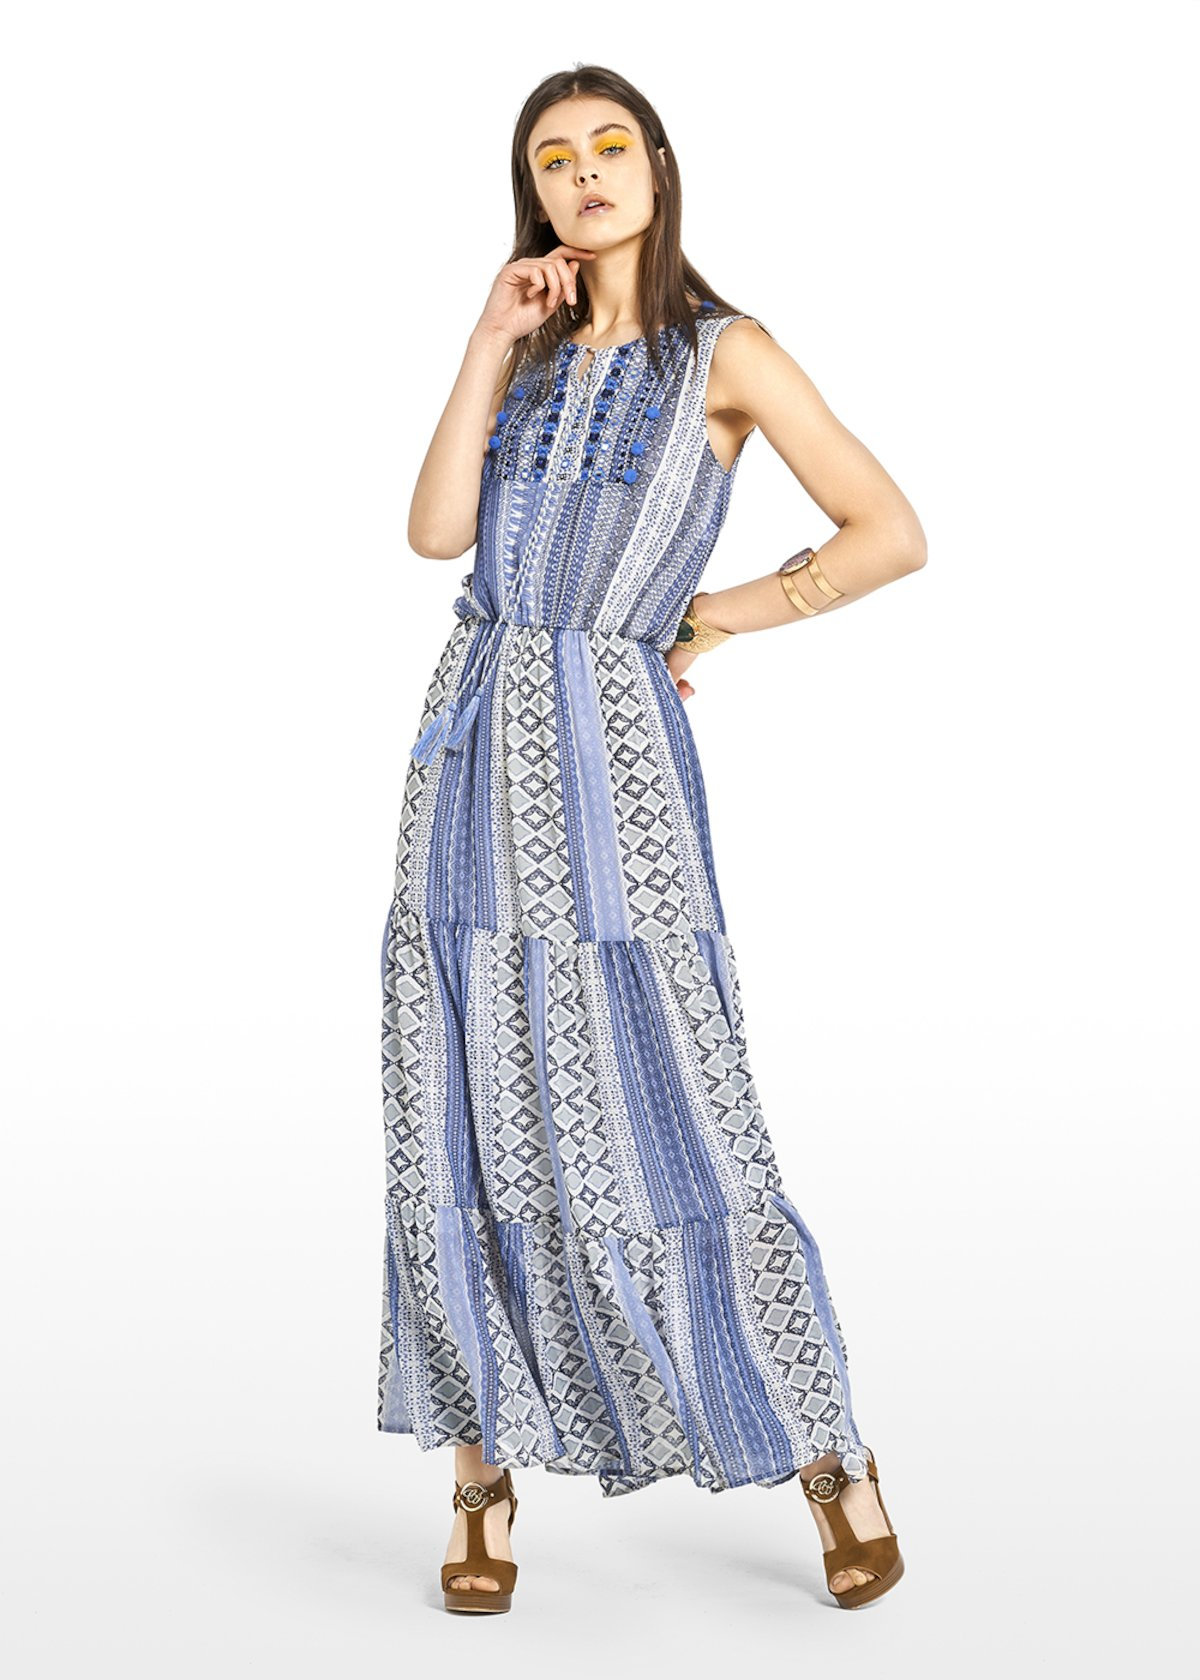 Abely dress in python print georgette - Avion / White Fantasia - Woman - Category image